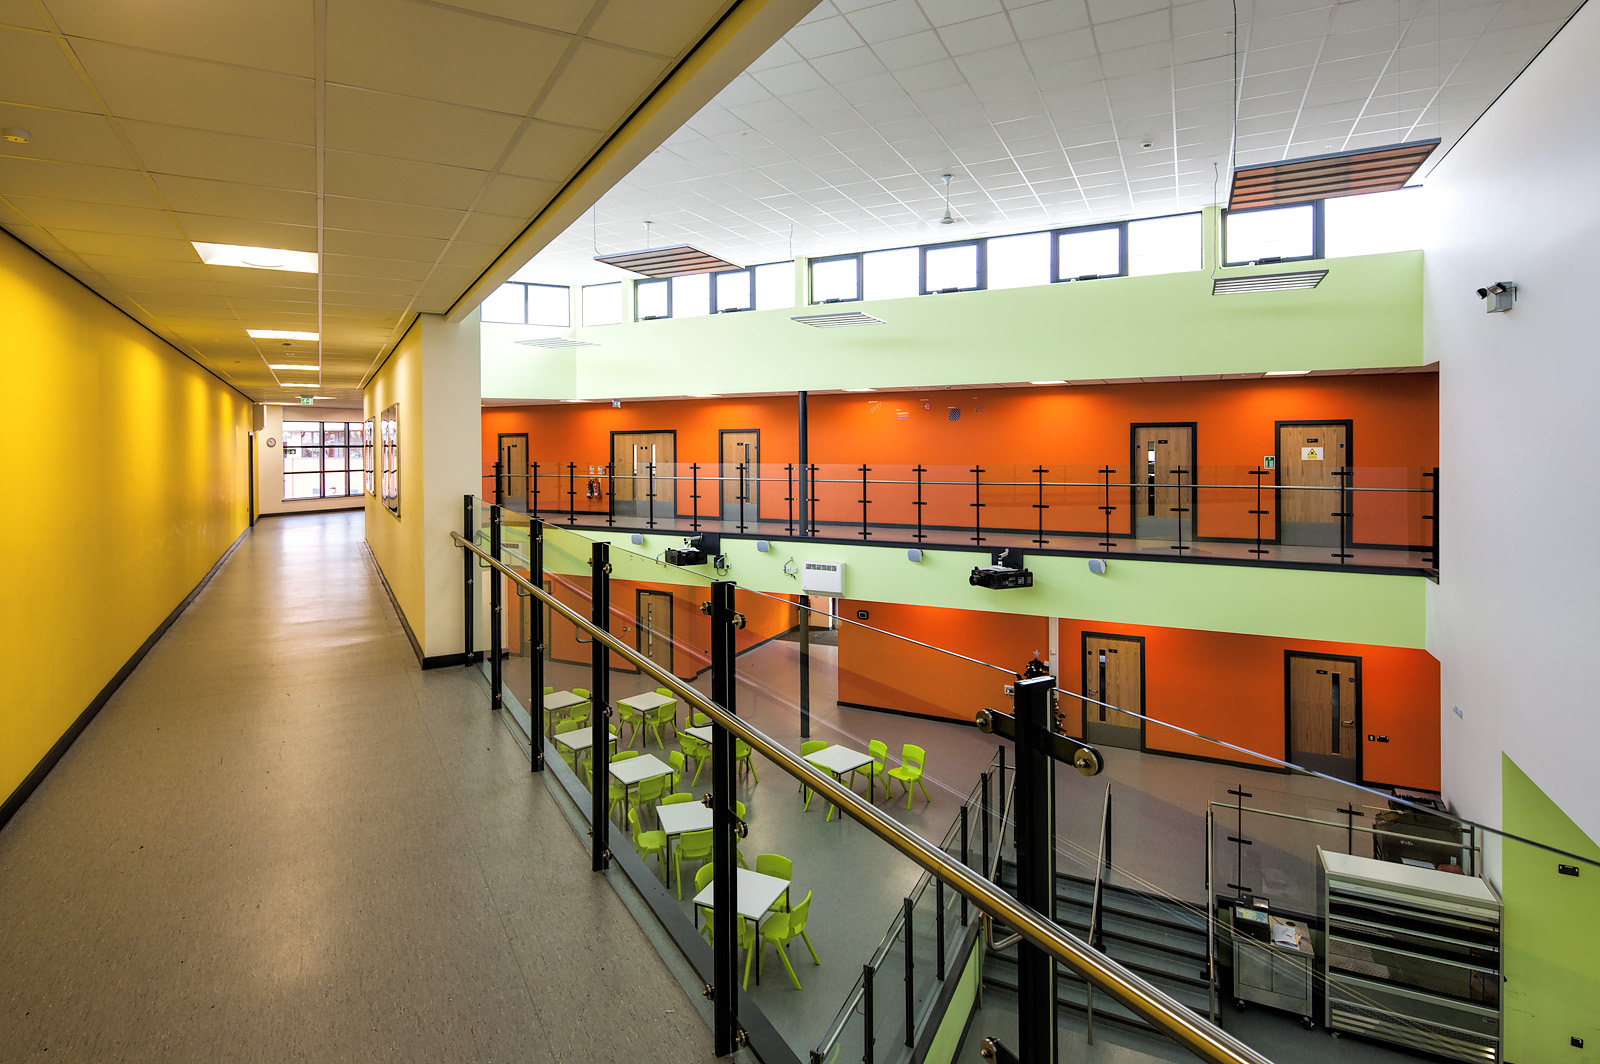 The open hallway area at a newly built school in Leicester